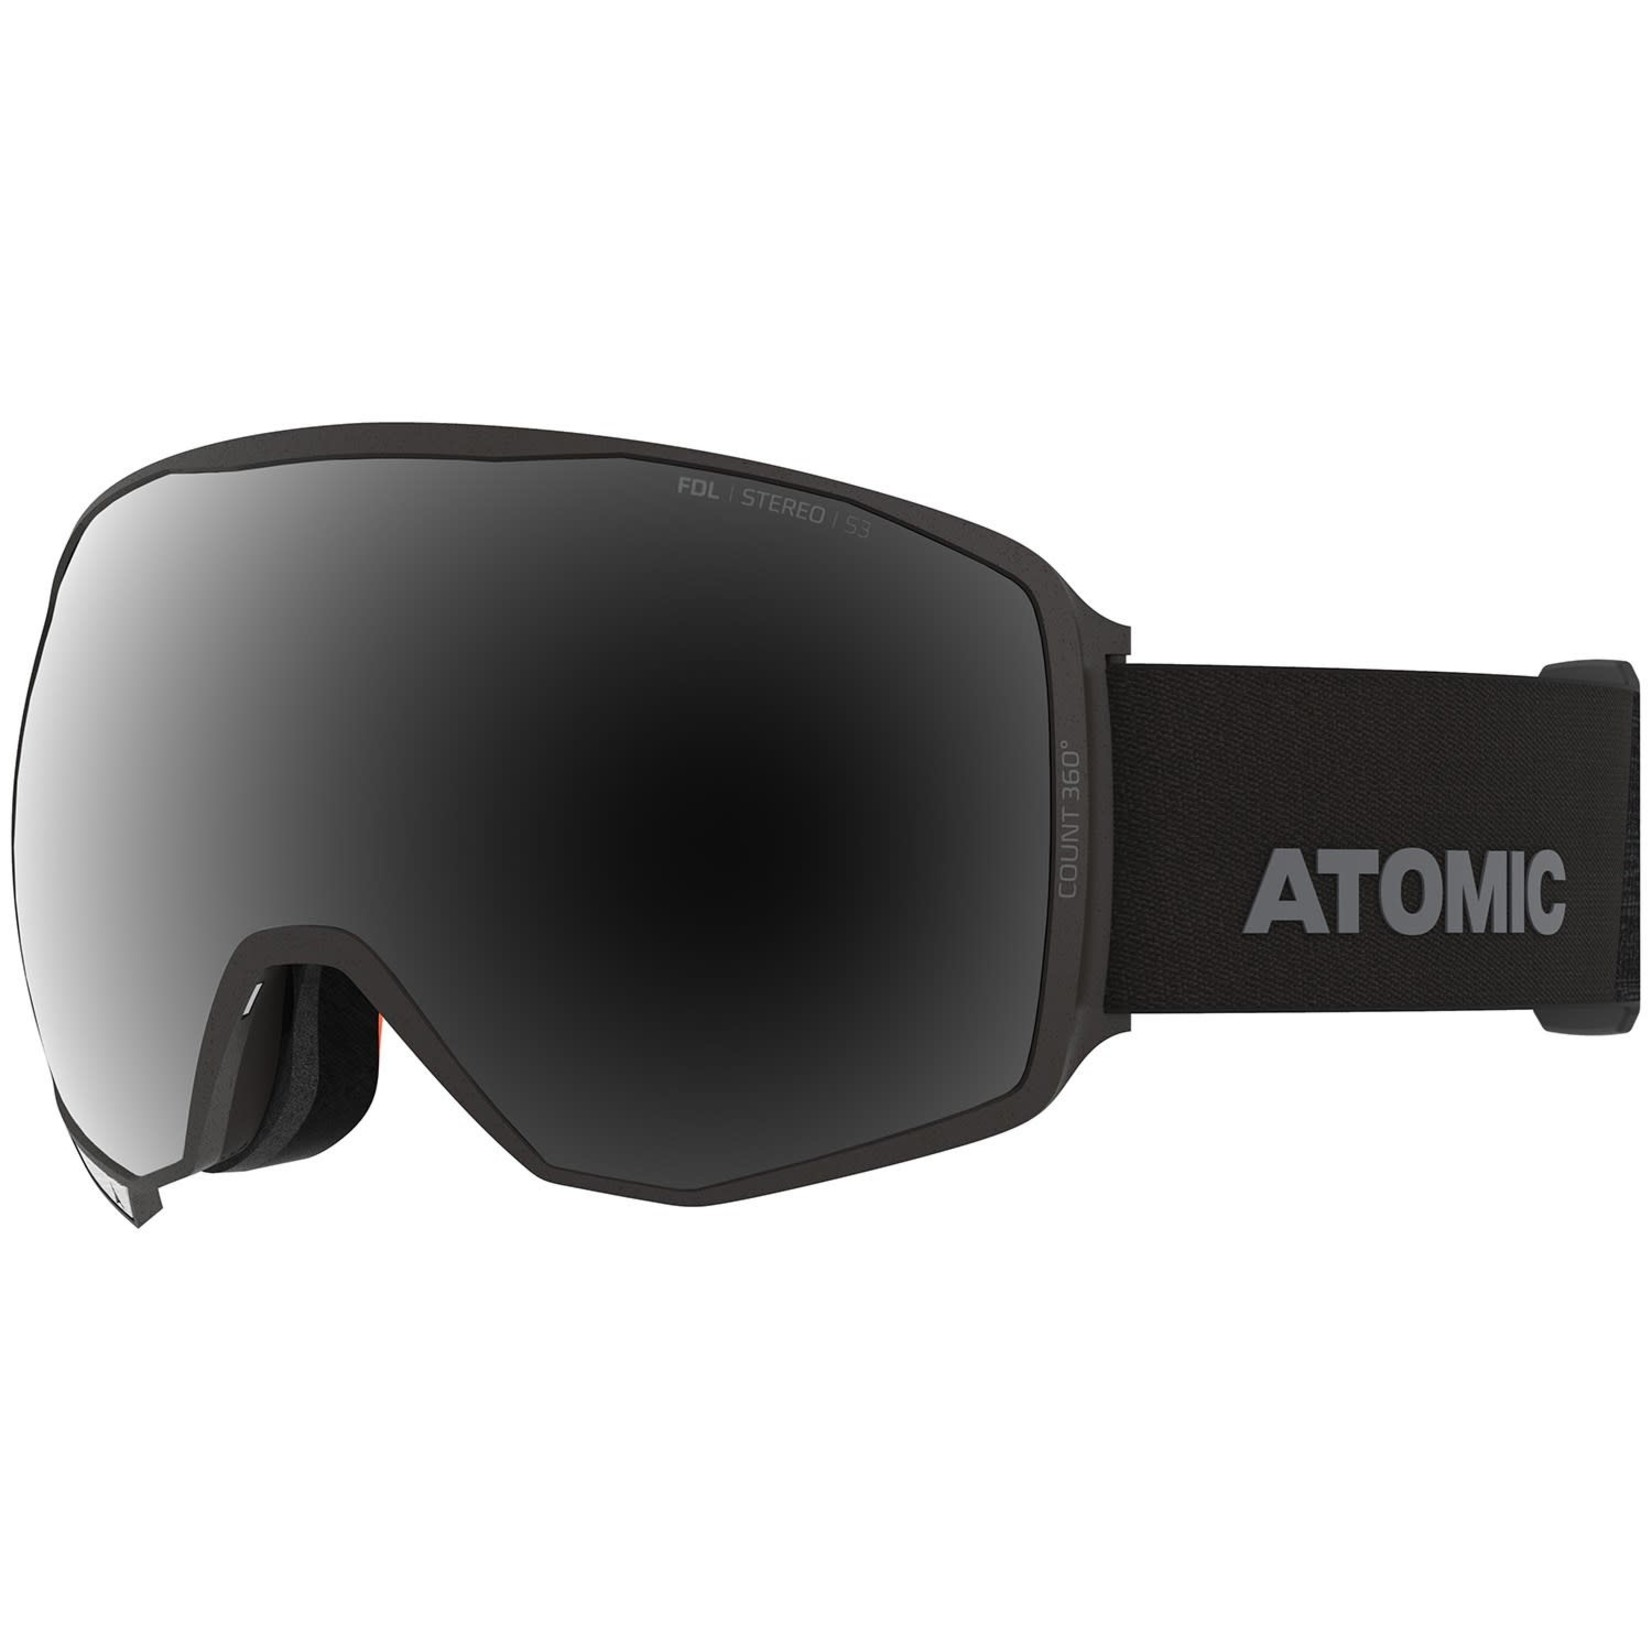 Atomic Atomic Count 360 Stereo Goggle - Unisex